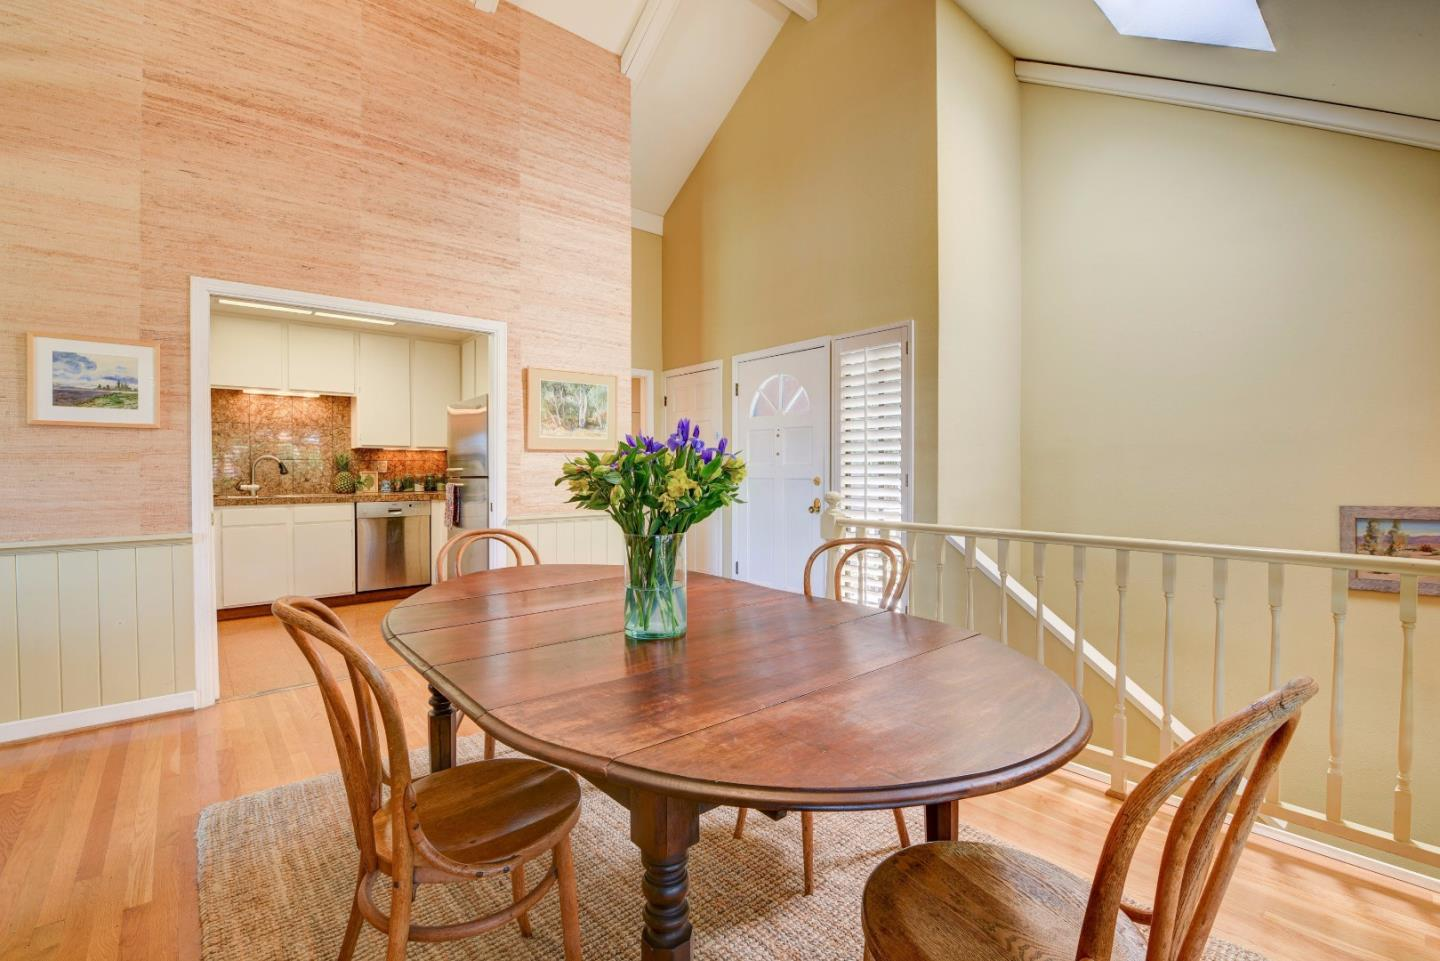 Additional photo for property listing at 514 Cliff Street  Santa Cruz, カリフォルニア 95060 アメリカ合衆国